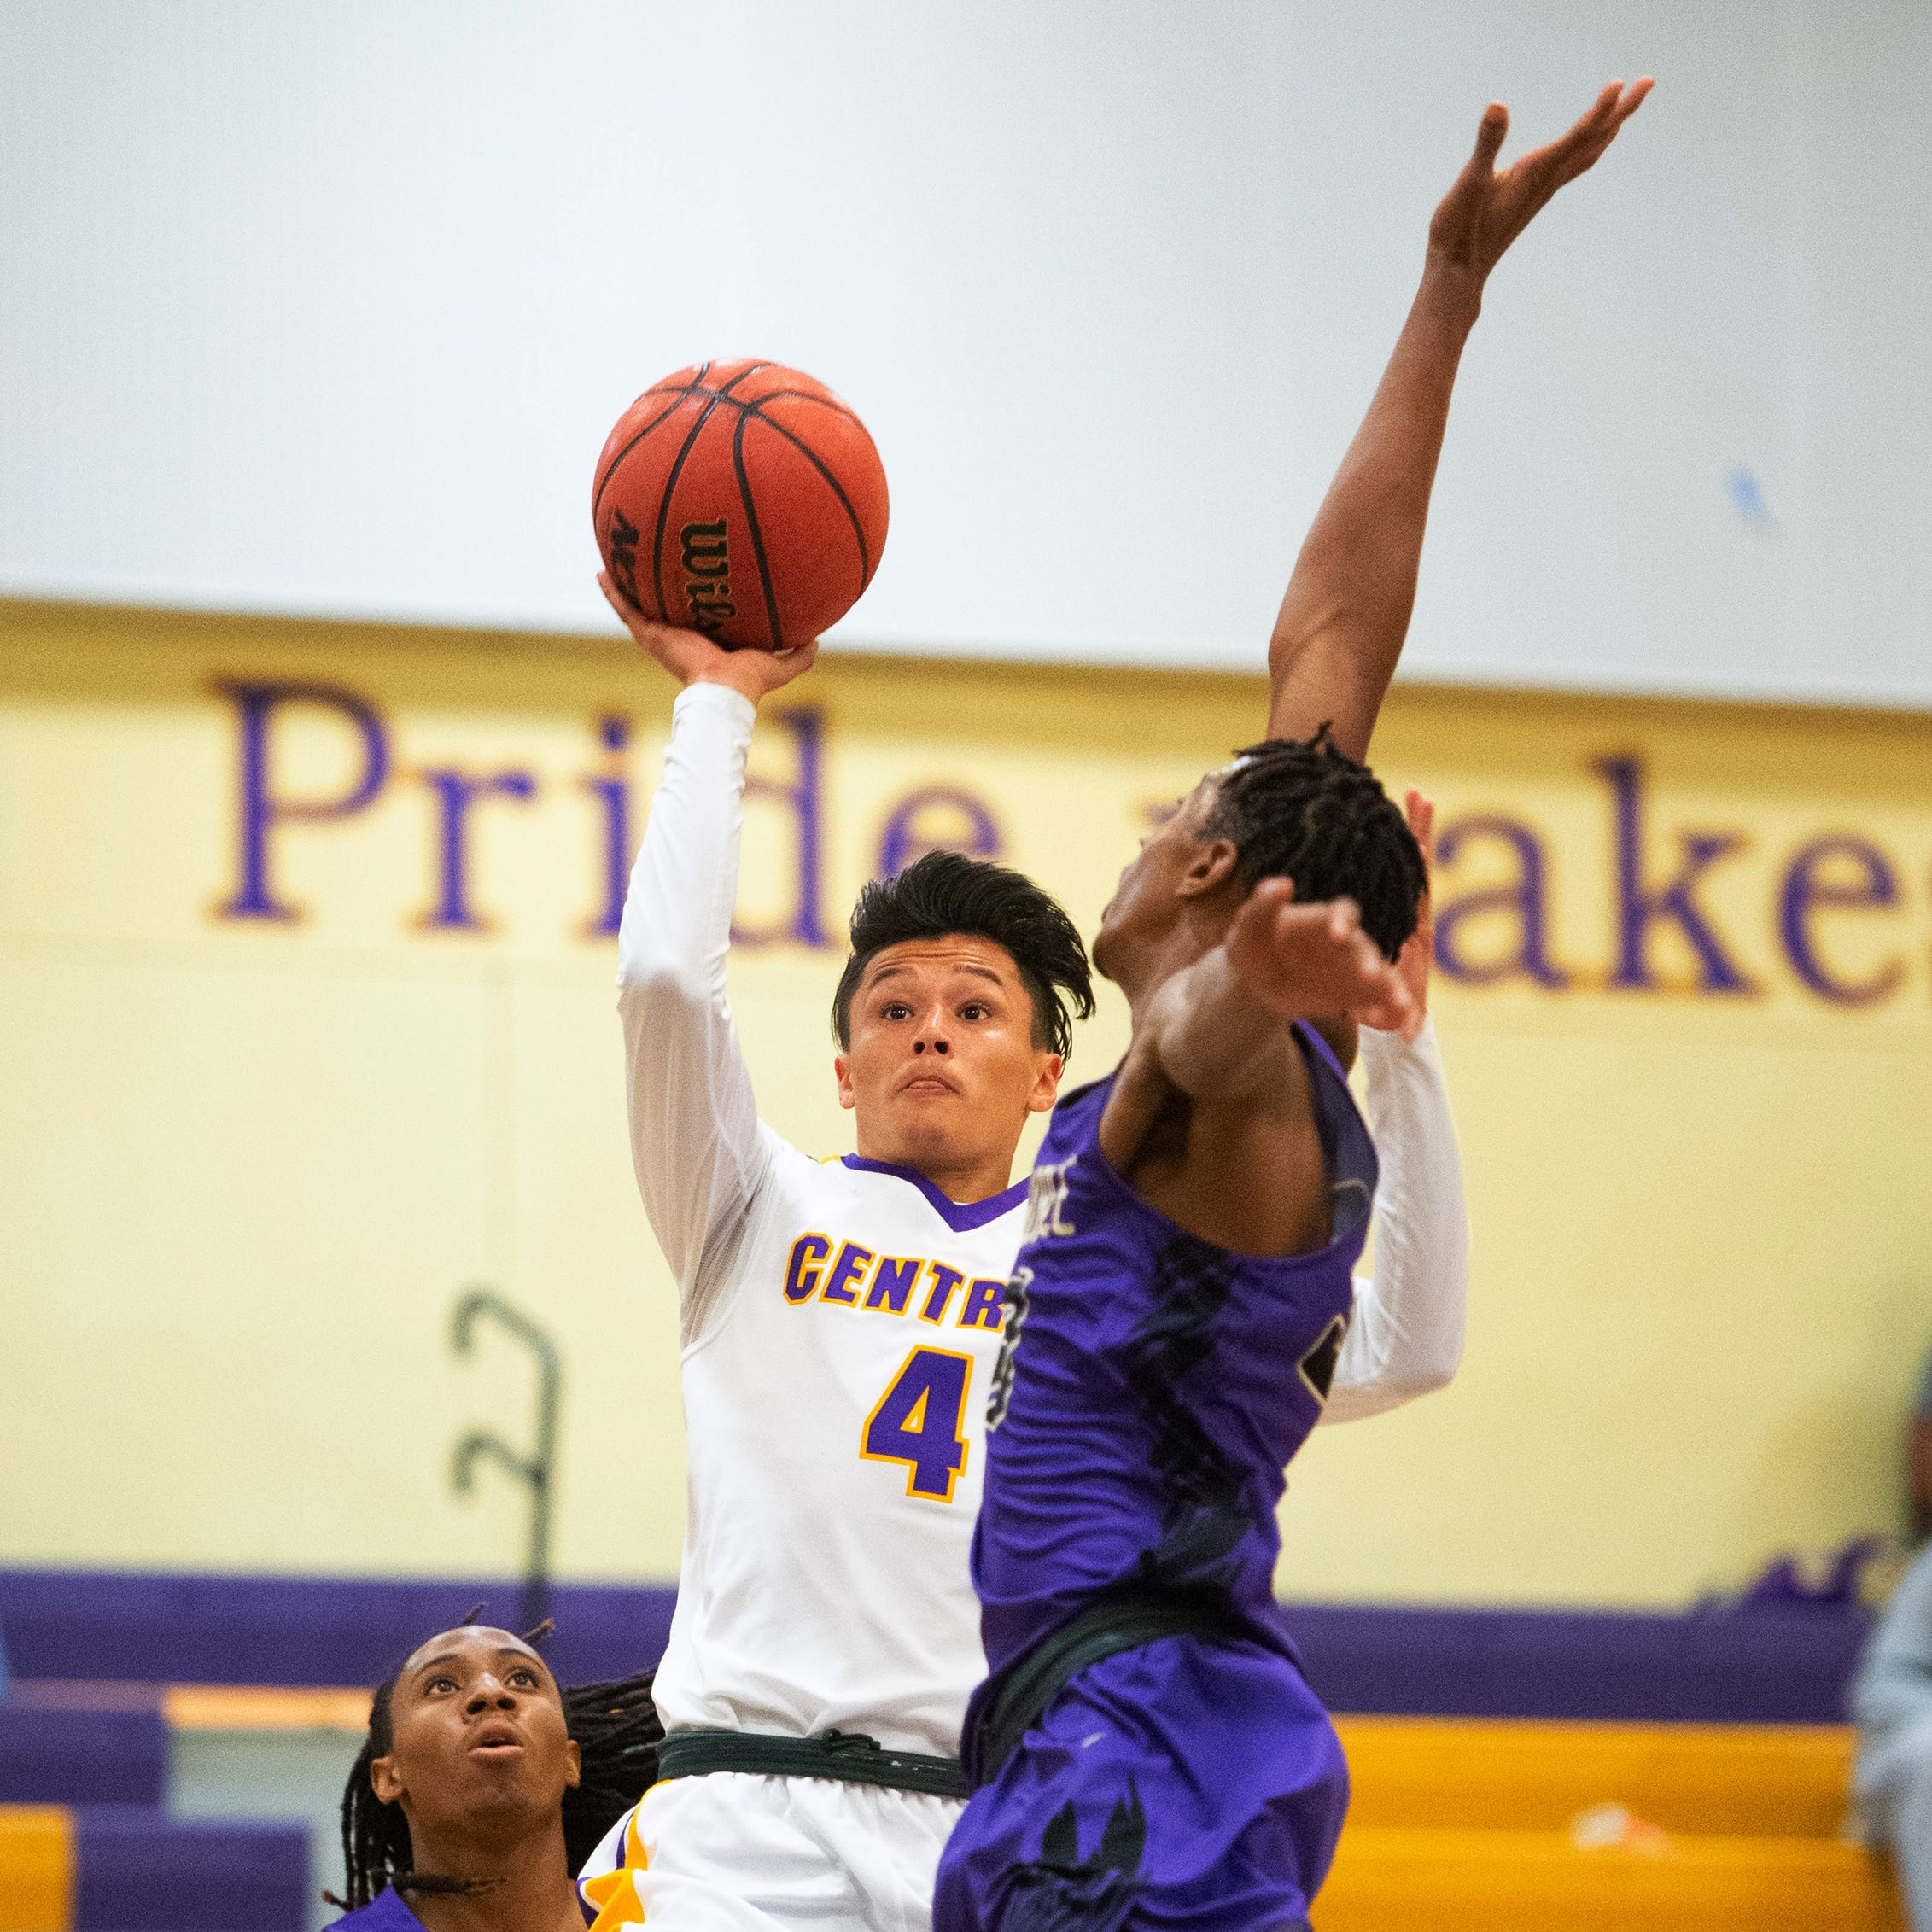 High school sports results: Tuesday, Dec. 11